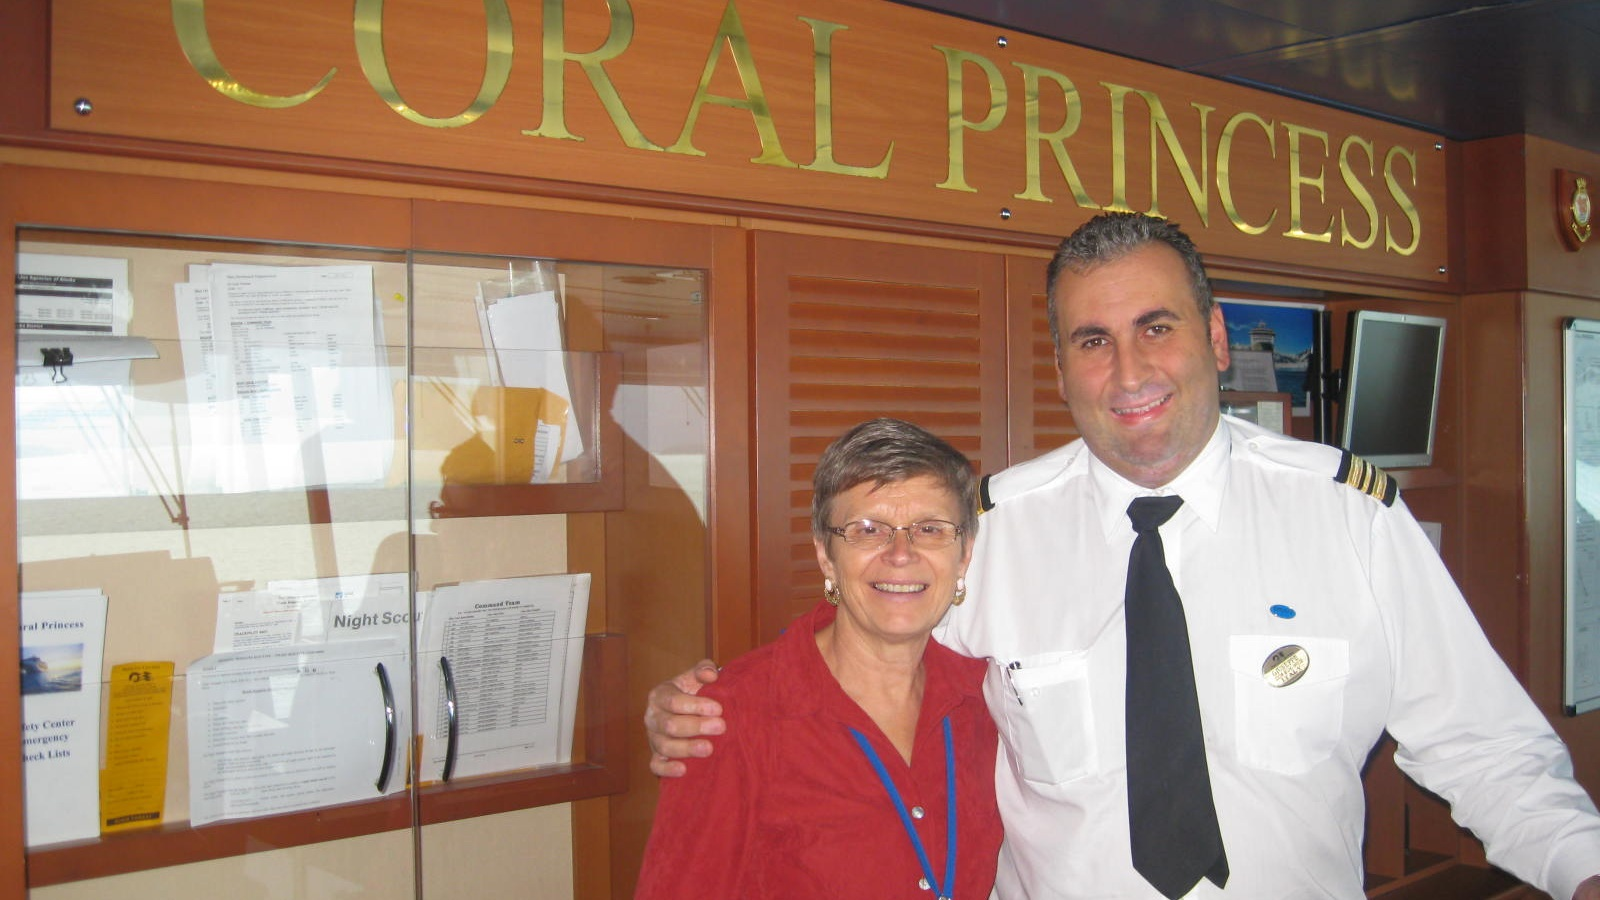 Jeanette meets with the captain of the Coral Princess.